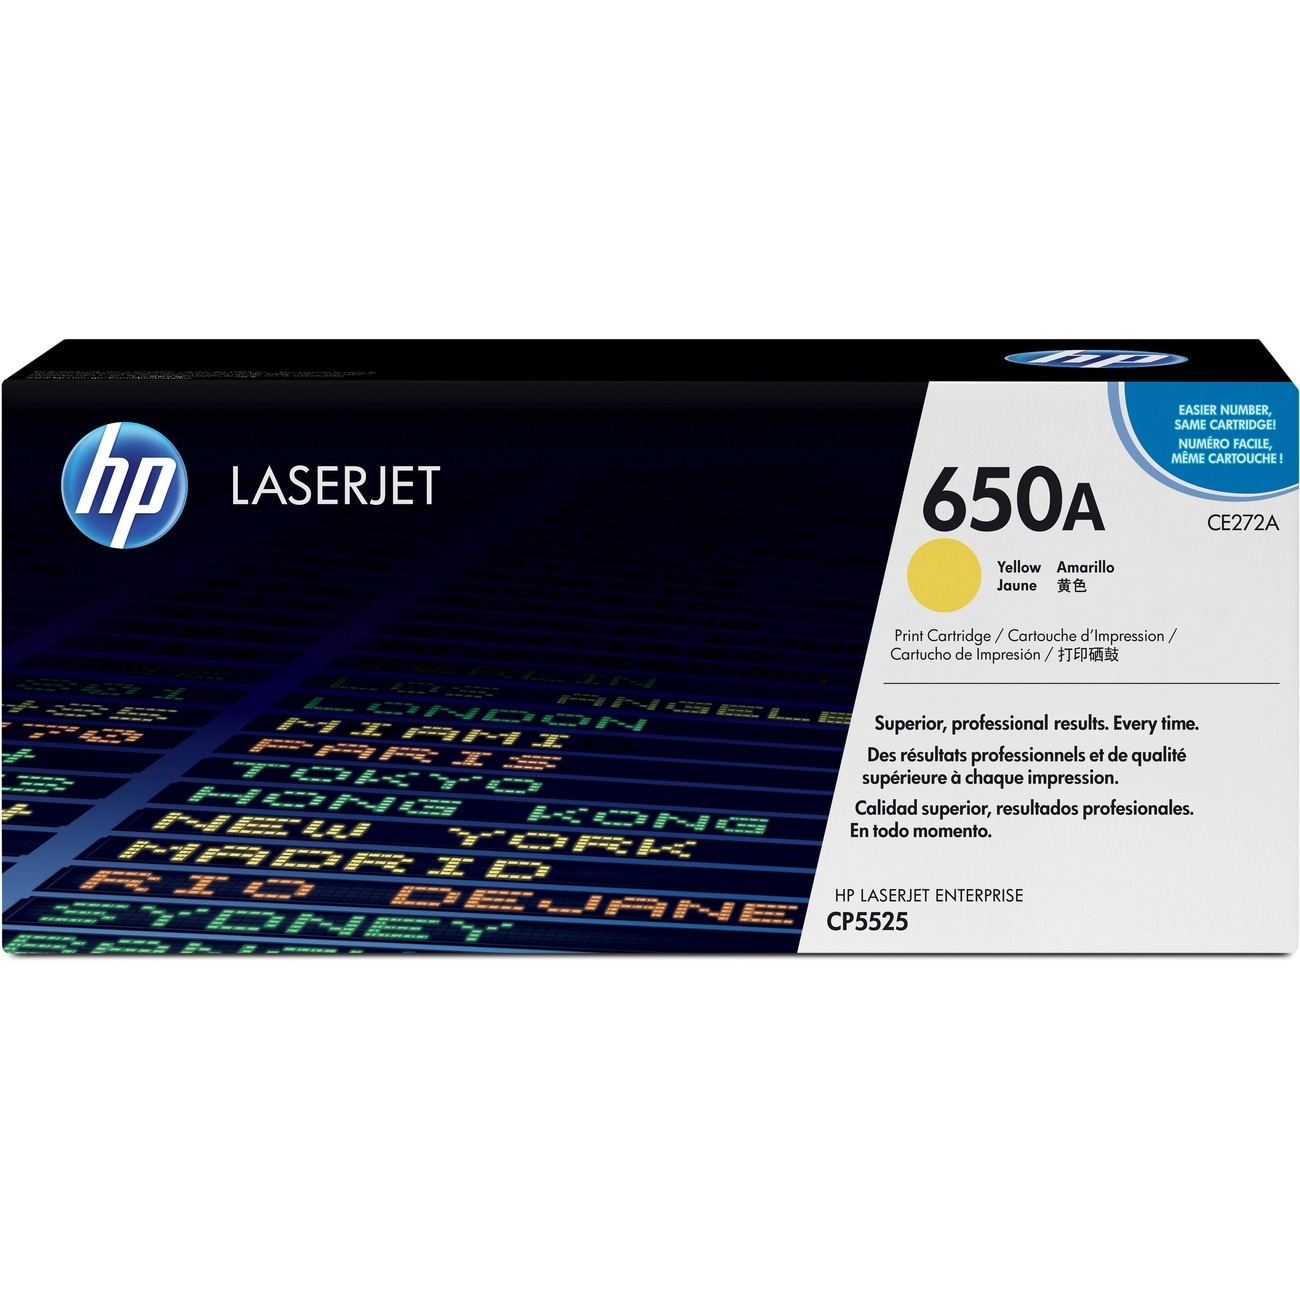 HP CE272A Toner Cartridge